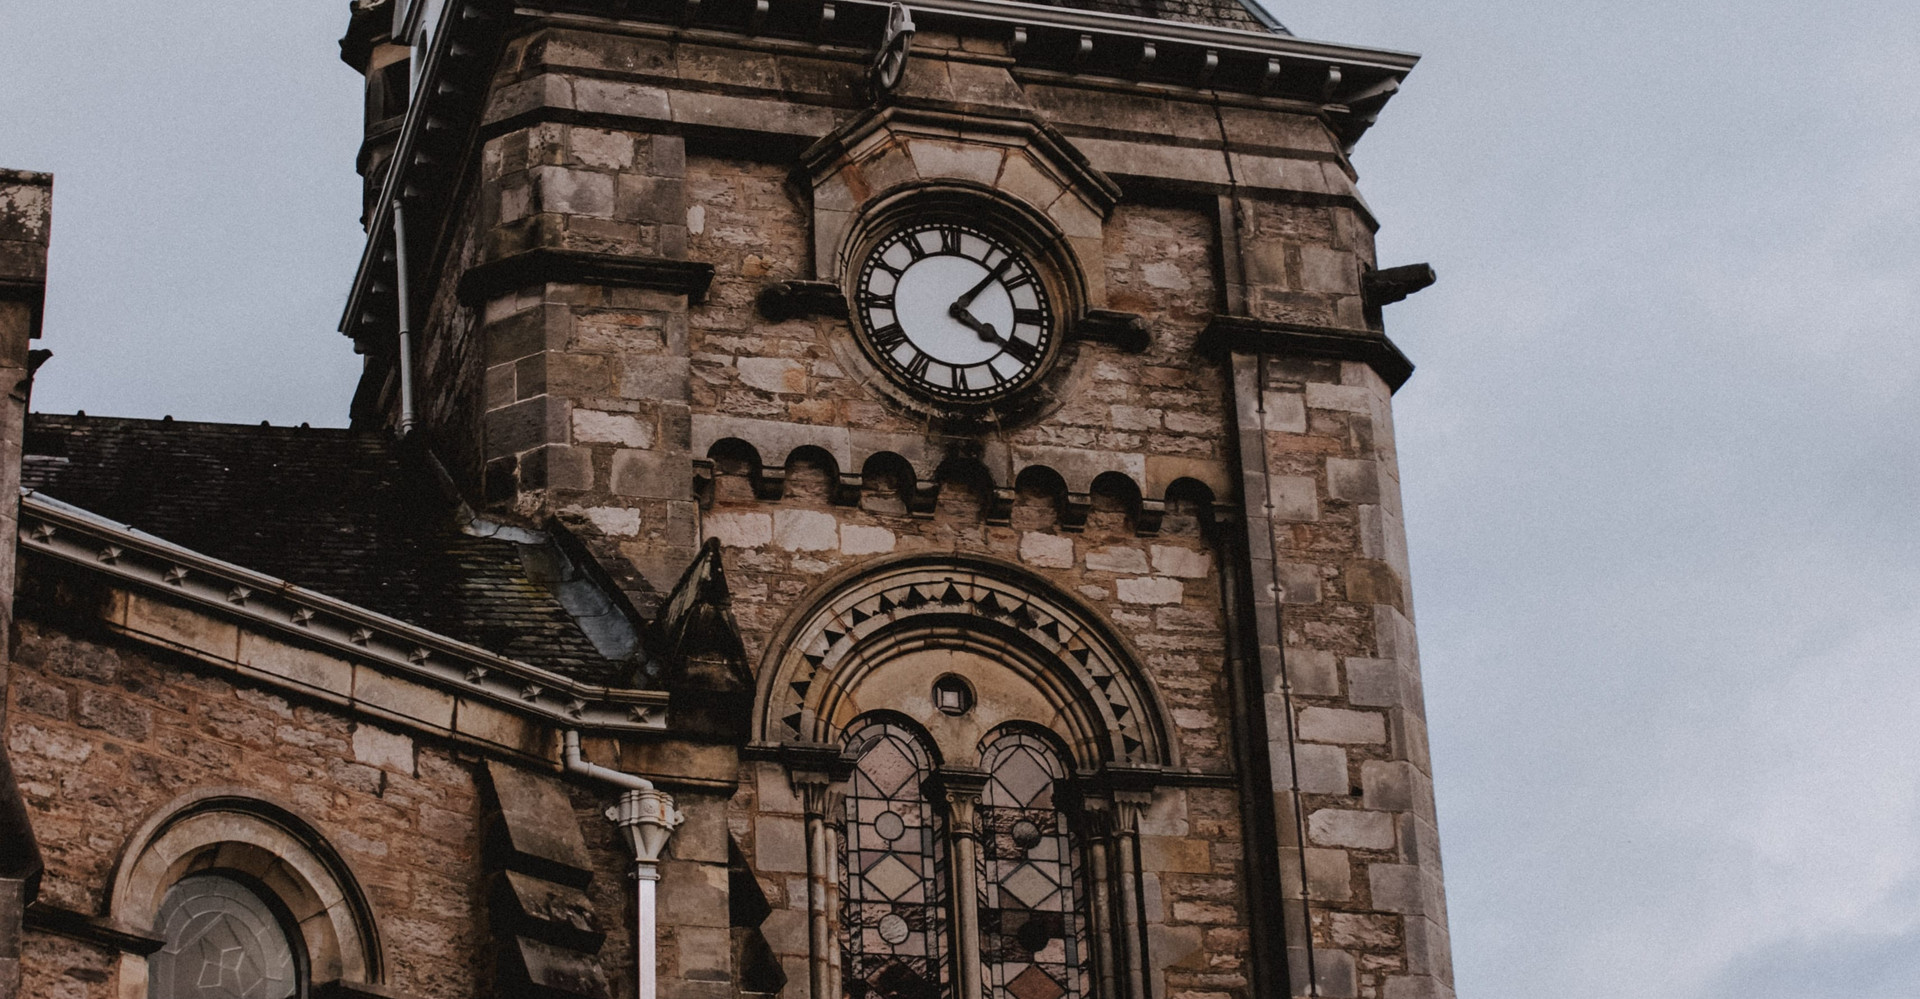 Pitlochry clock tower